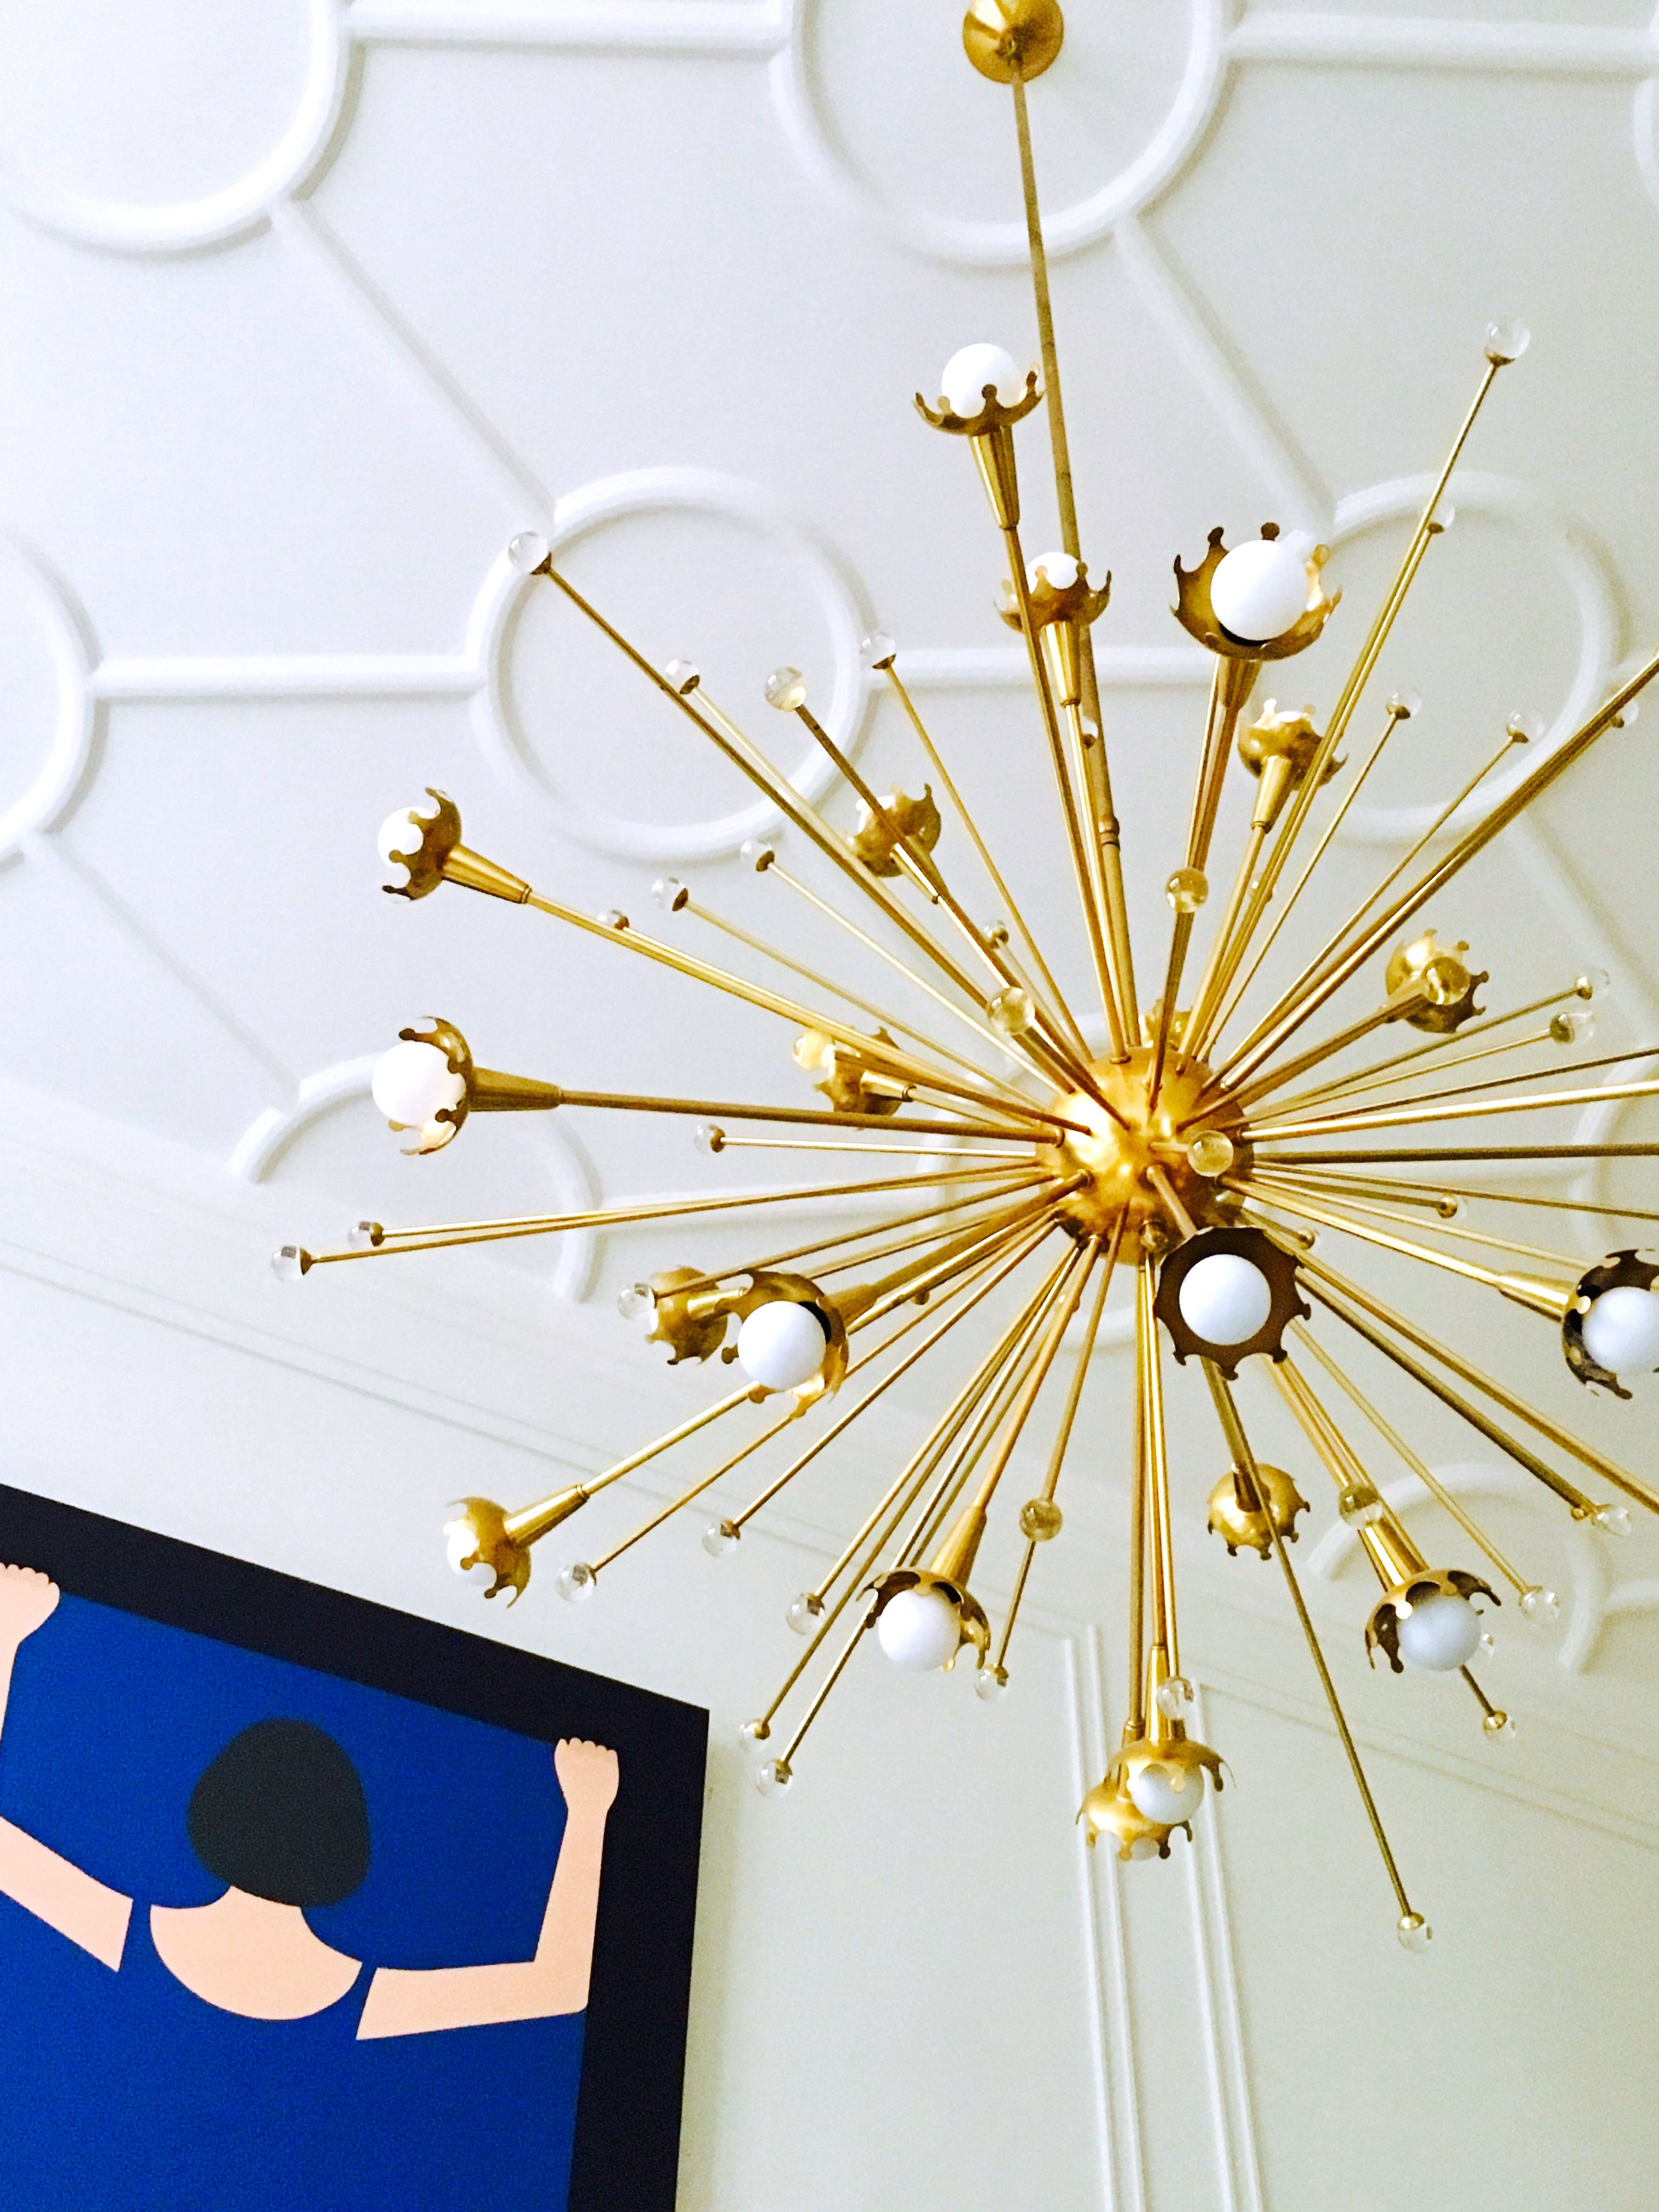 Feeling Flashy With The Jonathan Adler Giant Sputnik Chandelier And A Geoff  McFetridge.